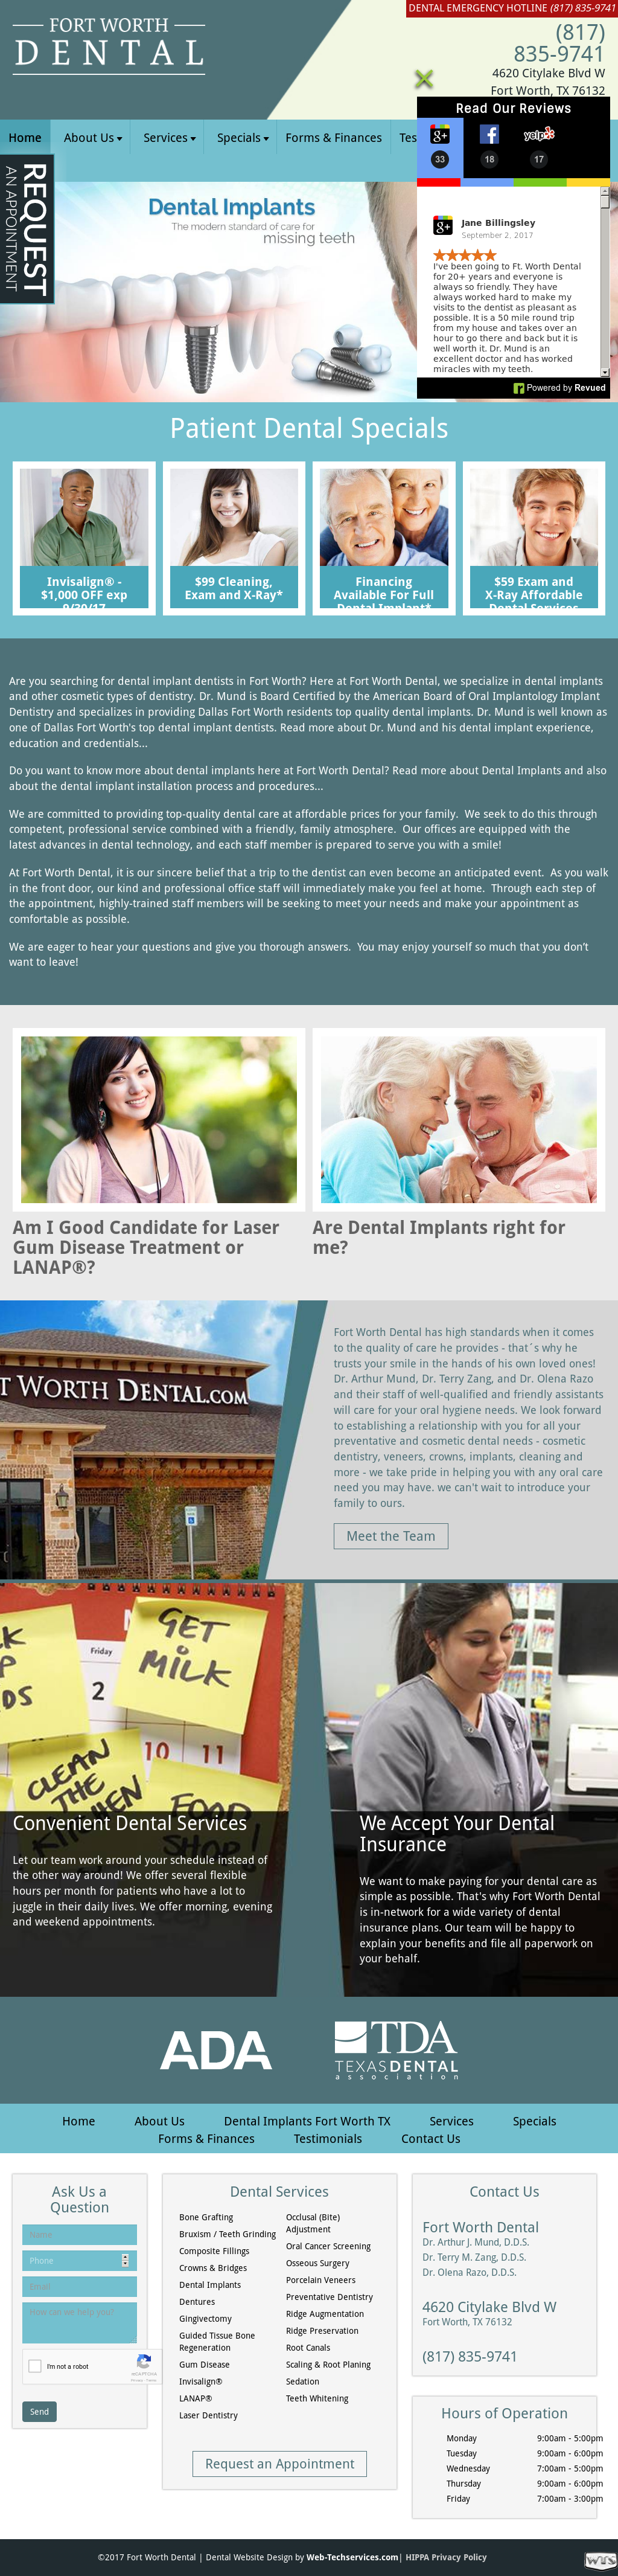 Fort Worth Dental Competitors, Revenue and Employees - Owler